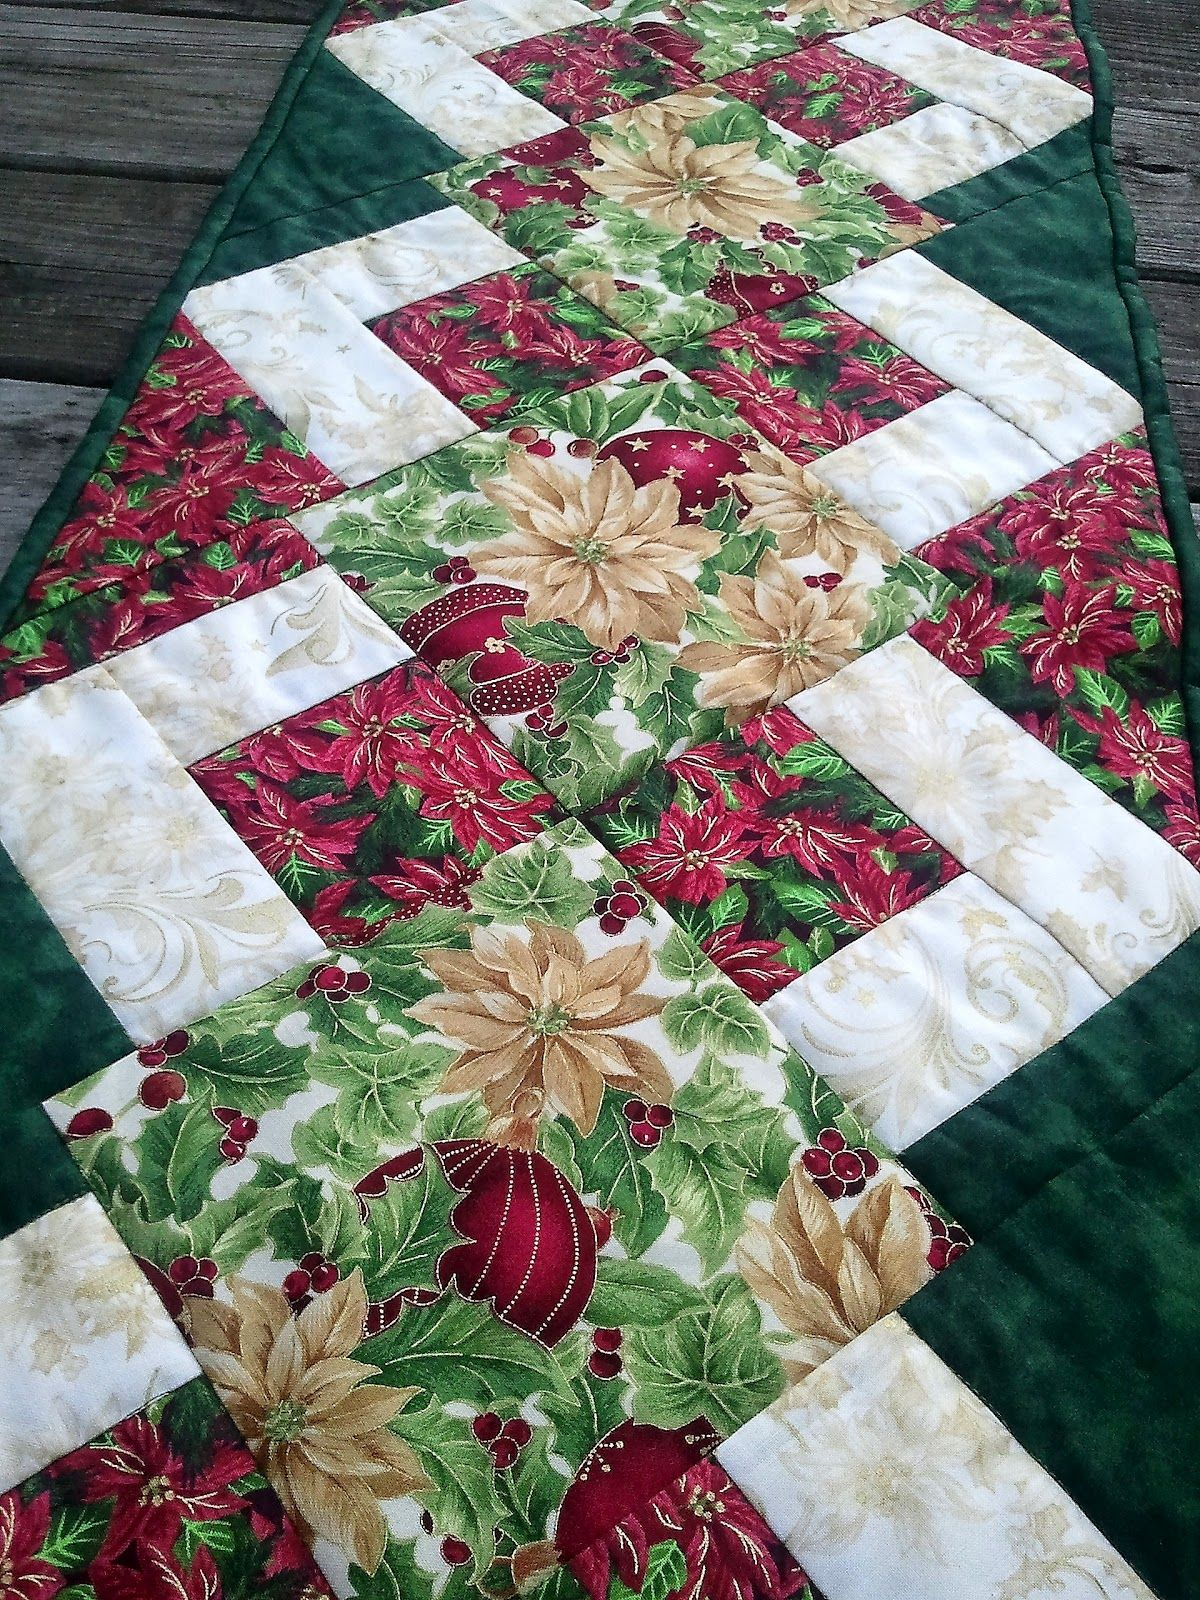 Pinterest Quilting Table Runners : The Recipe Bunny: Christmas Table Runner and Tutorial Quilting and Sewing Pinterest Table ...